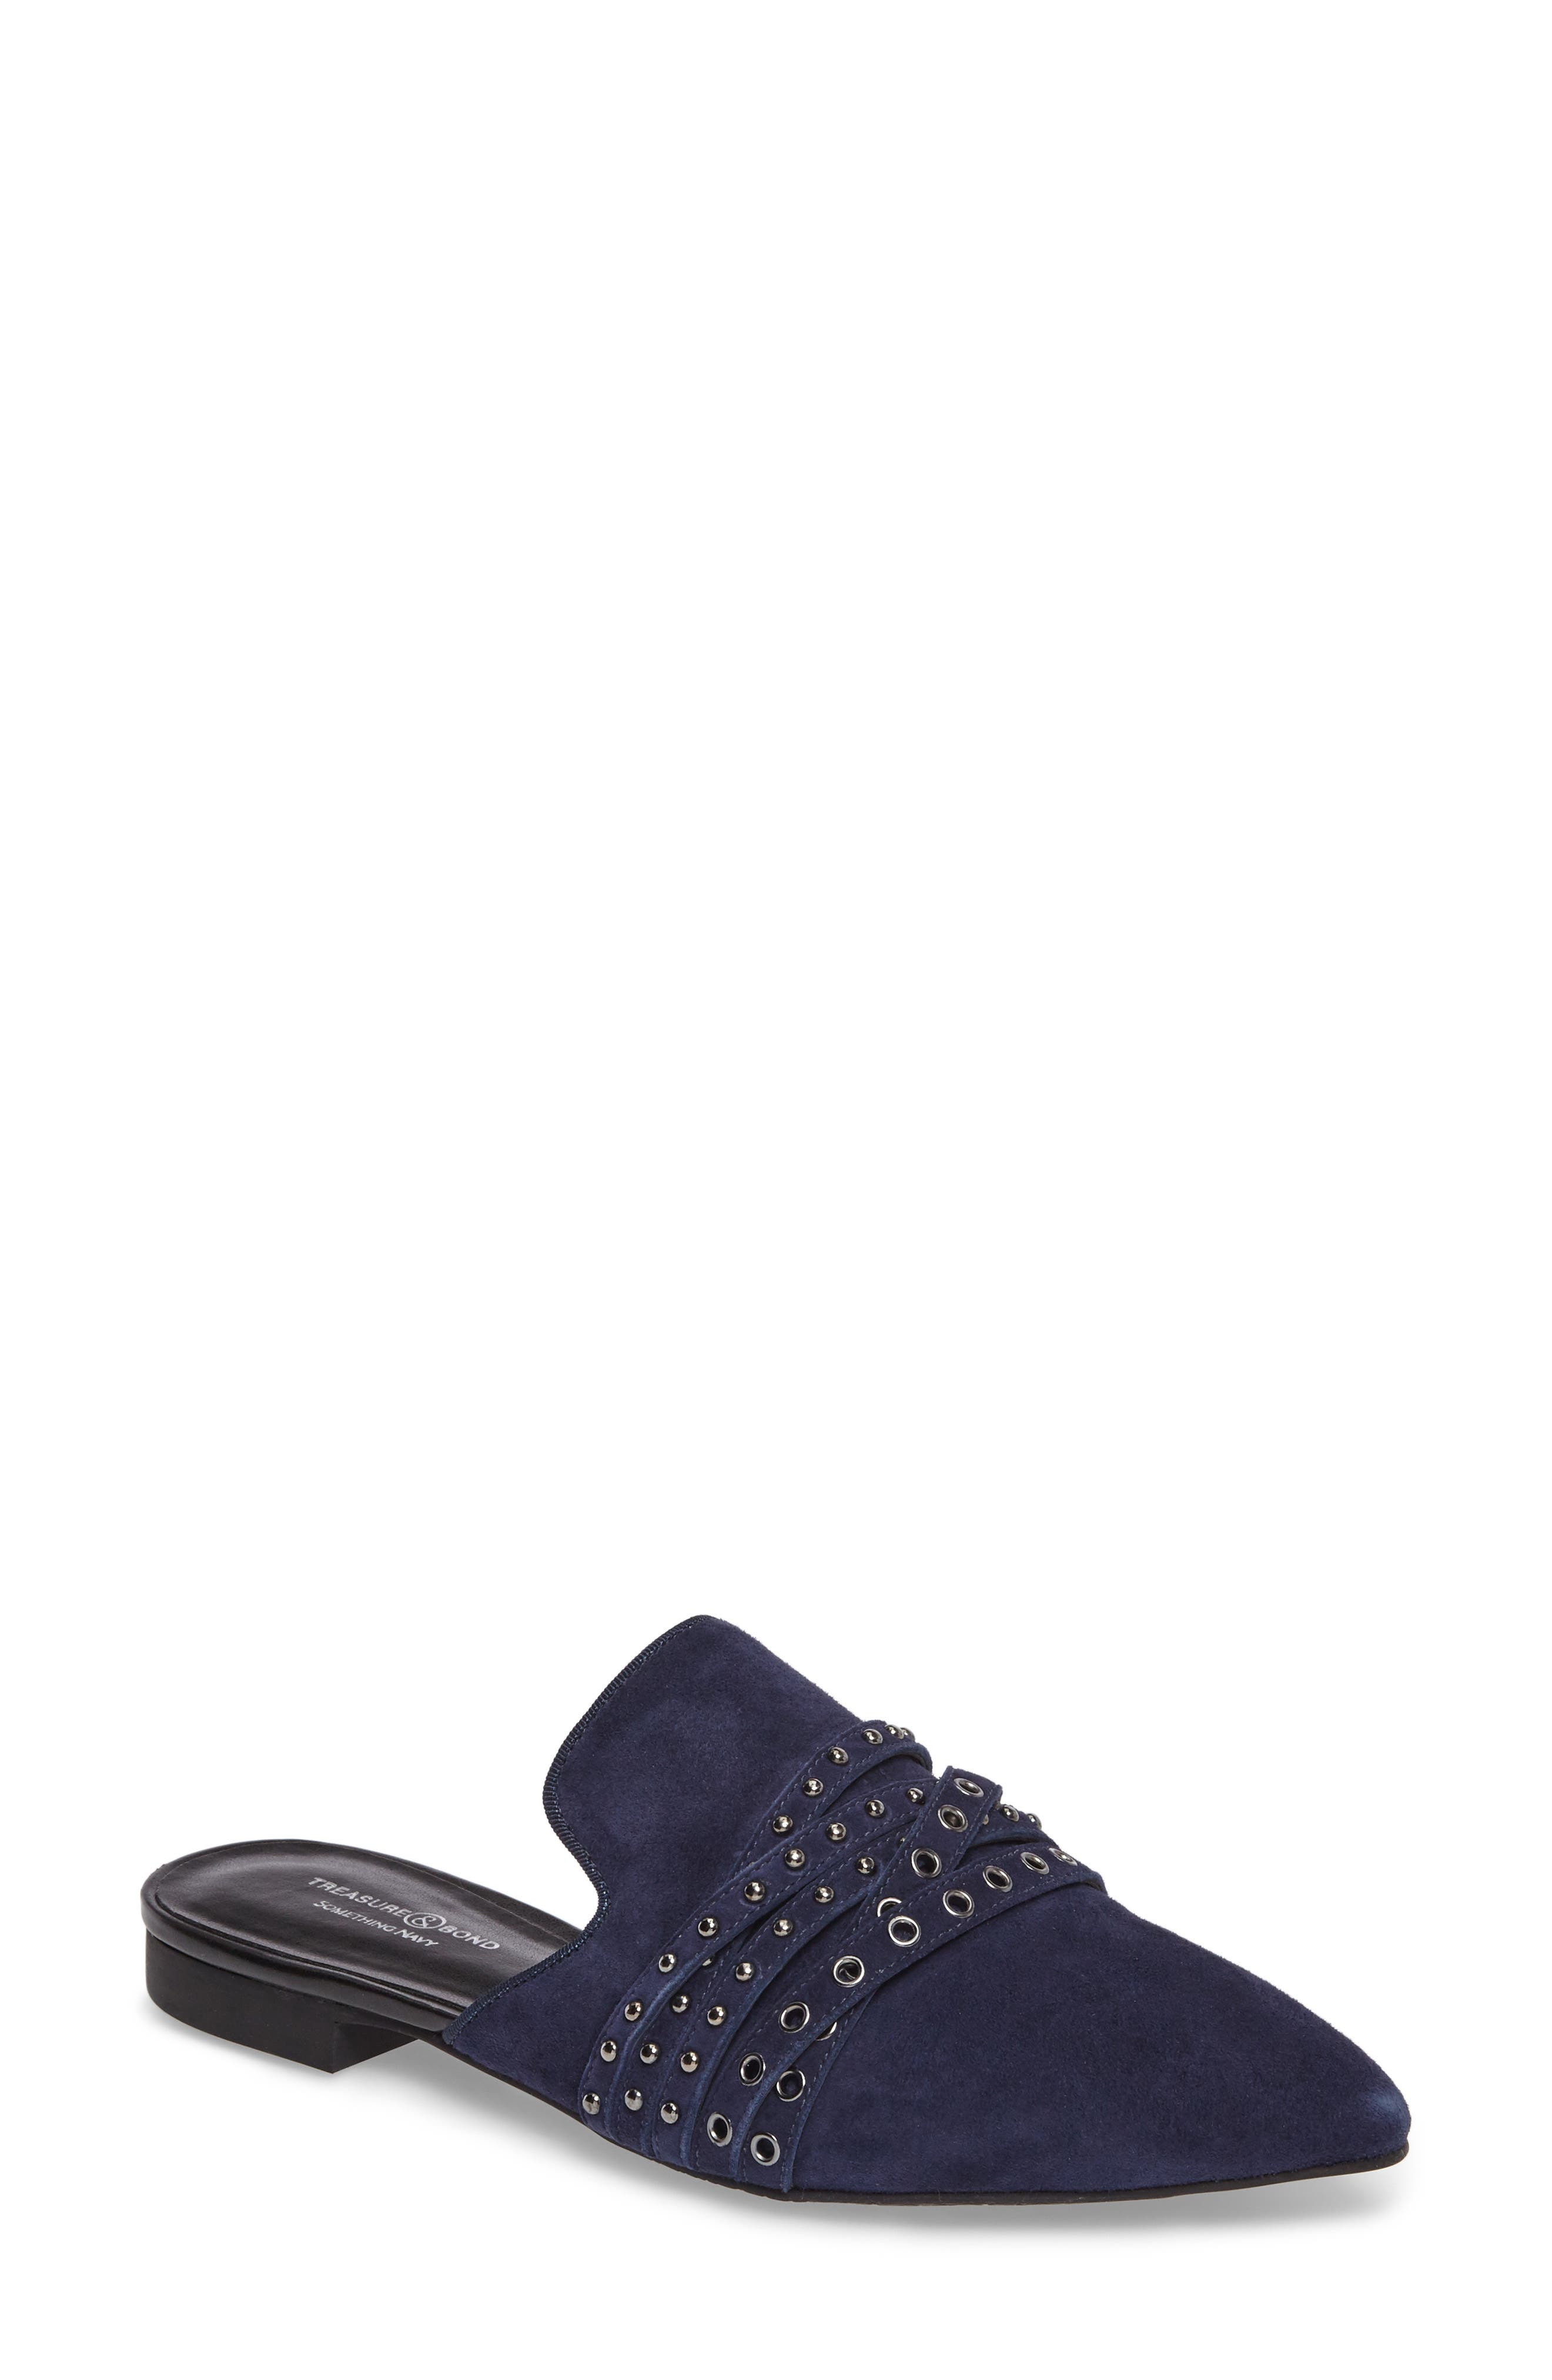 Treasure & Bond x Something Navy Kaine Strappy Mule (Women)